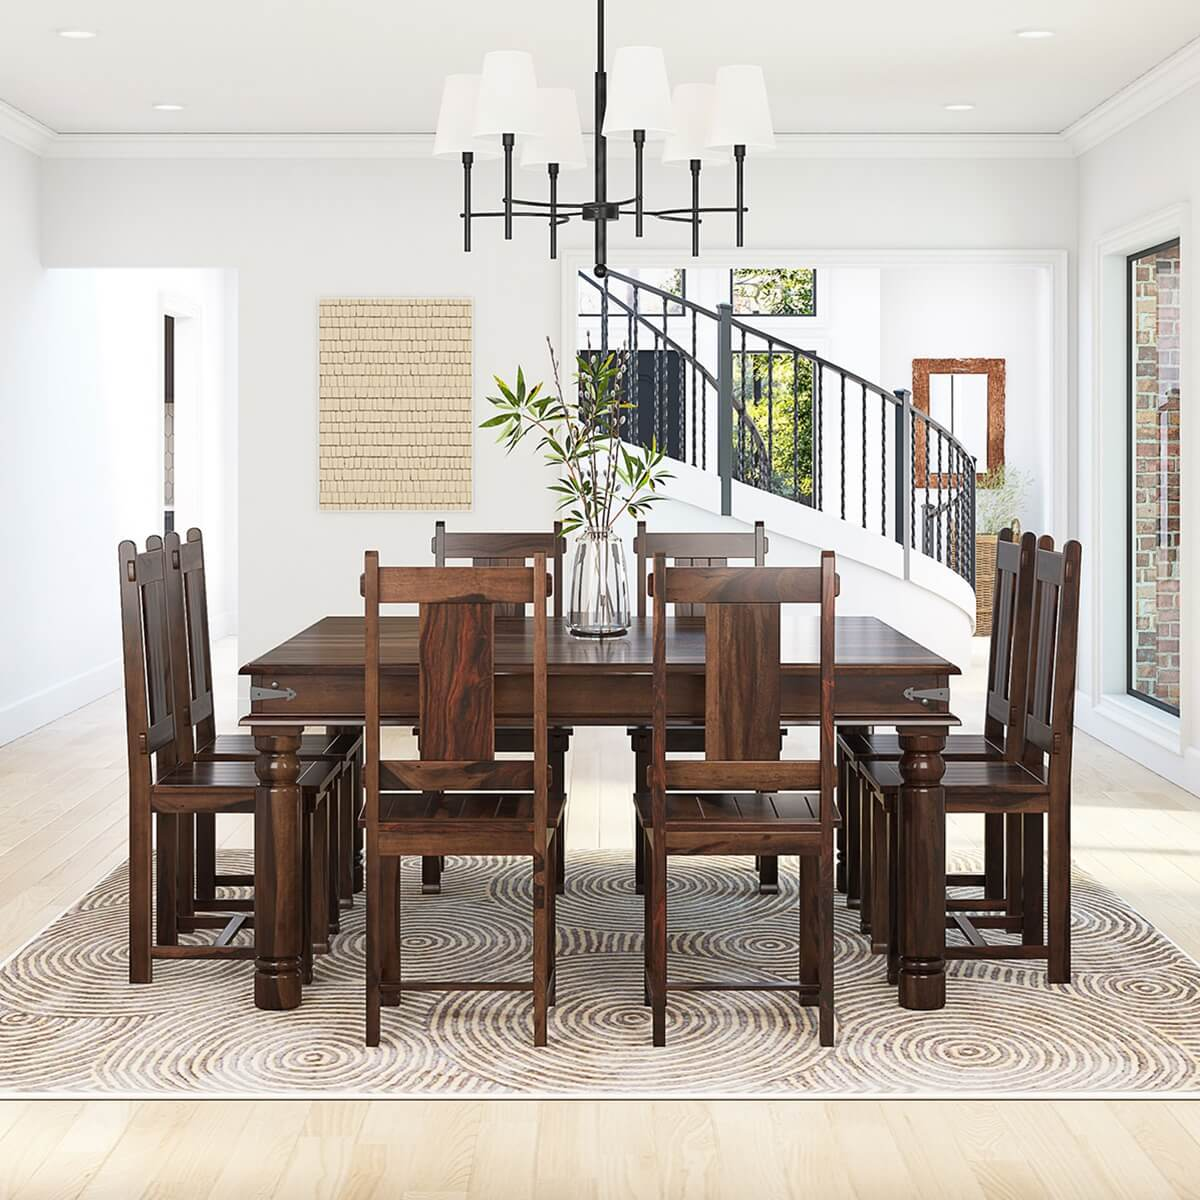 Richmond Rustic Solid Wood Large Square Dining Room Table: rustic wood dining table